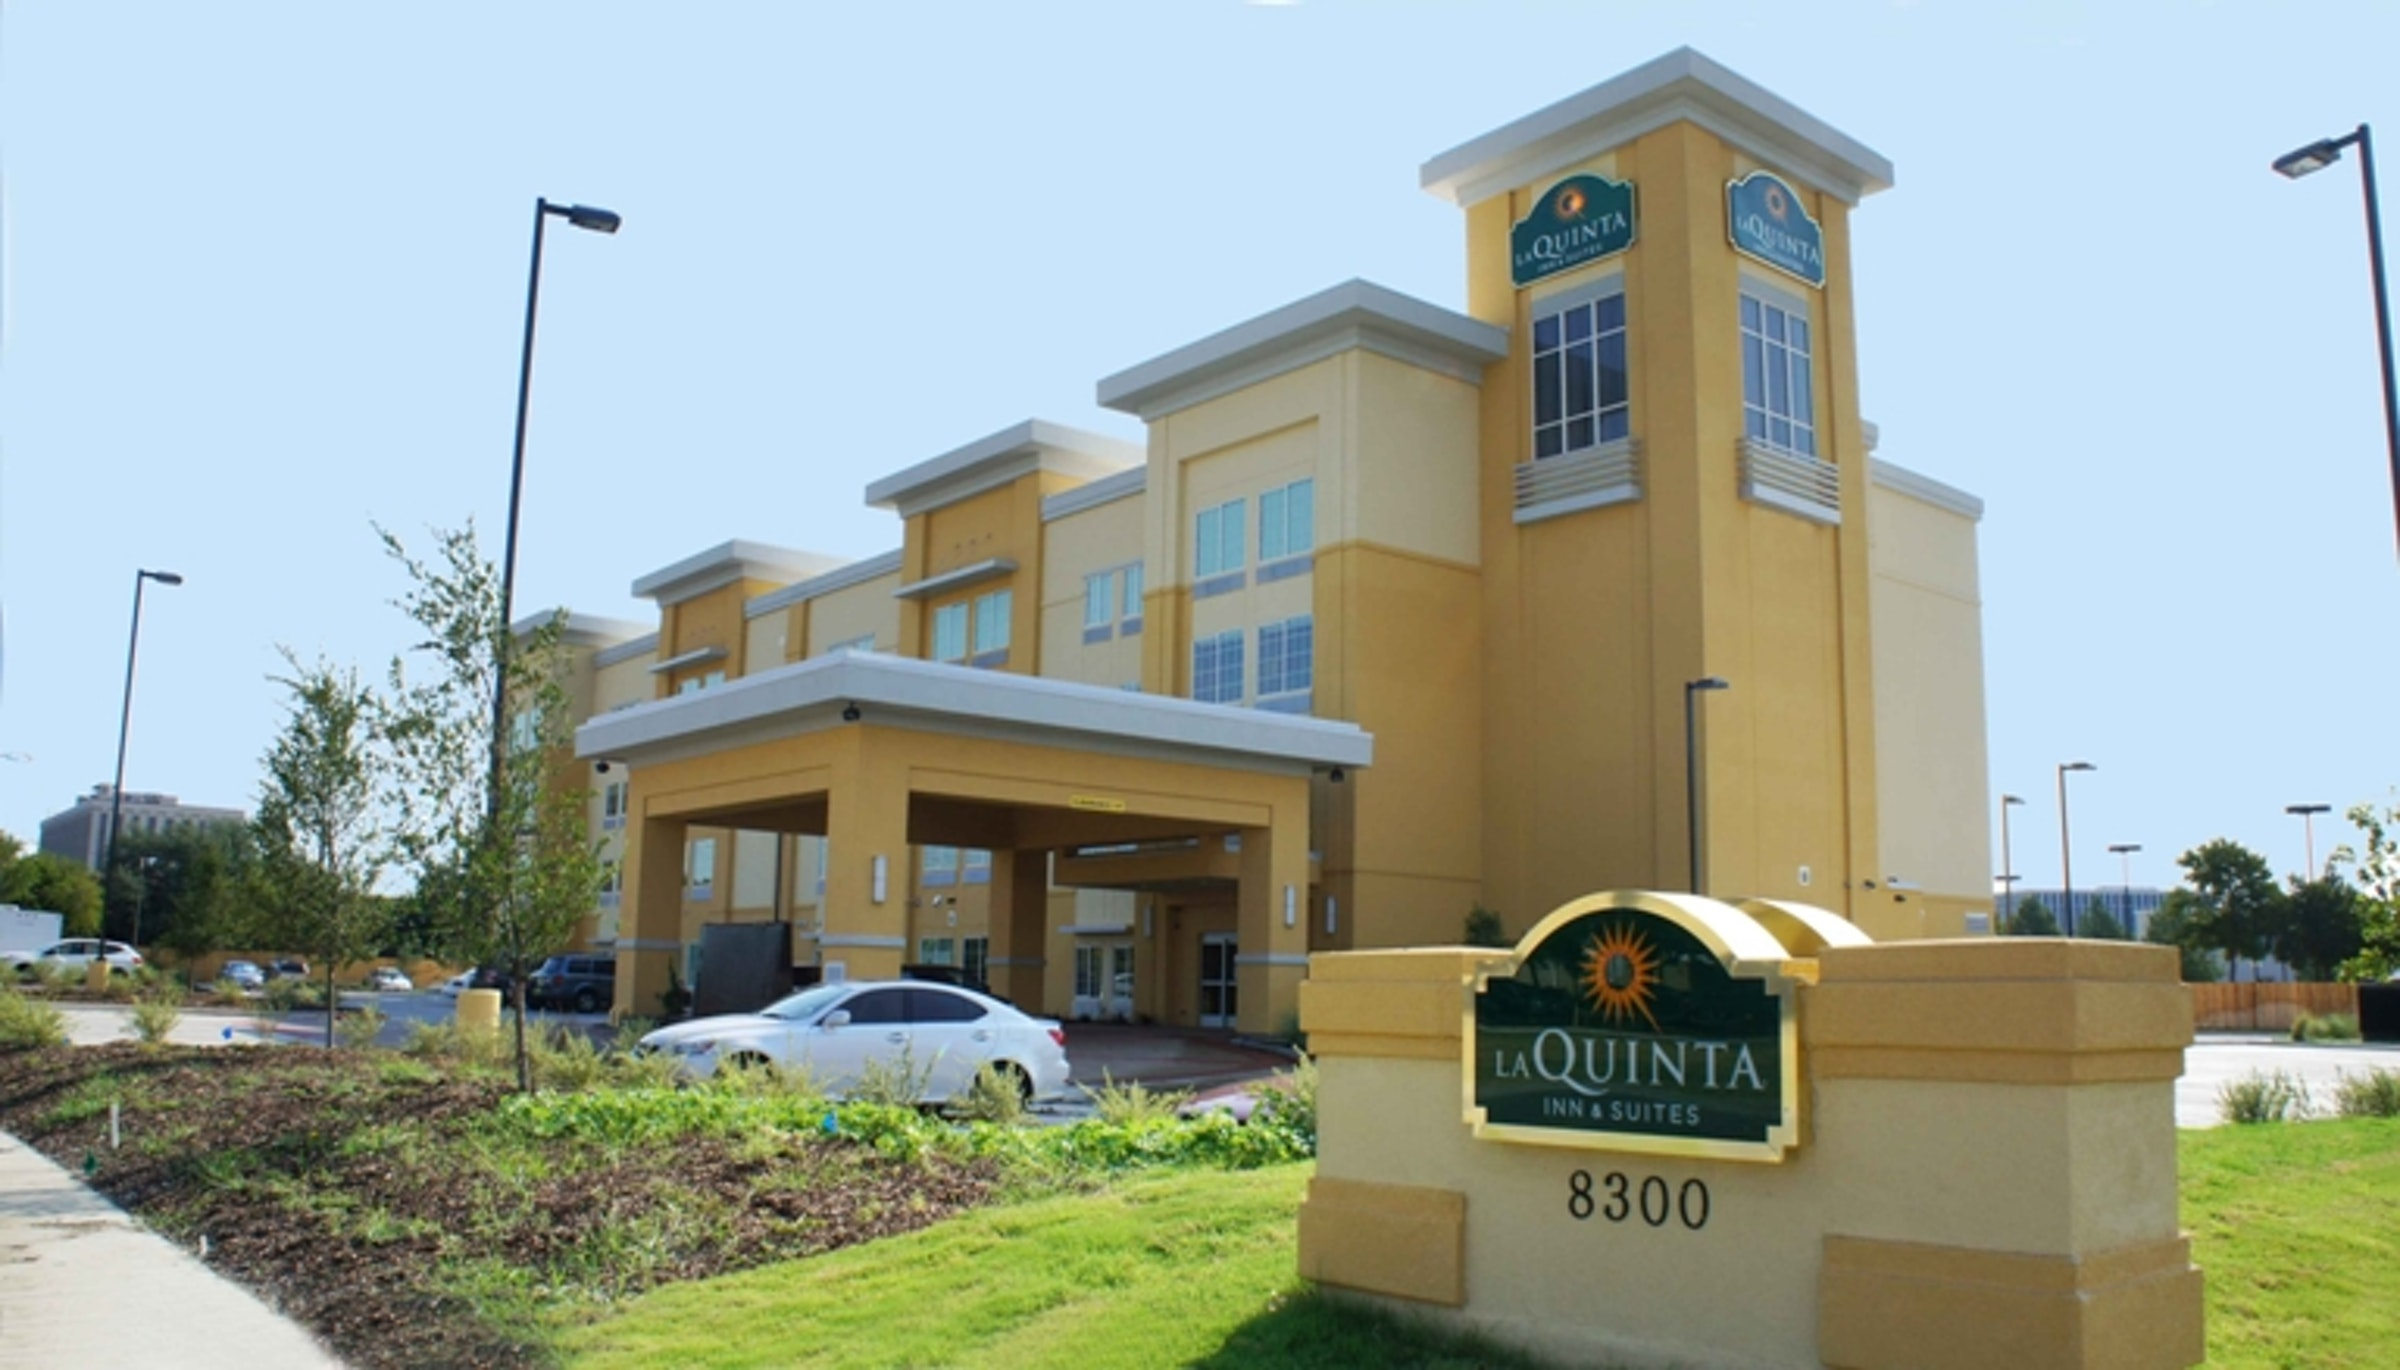 La Quinta Inn & Suites- Dallas Love Field in Beyond Dallas